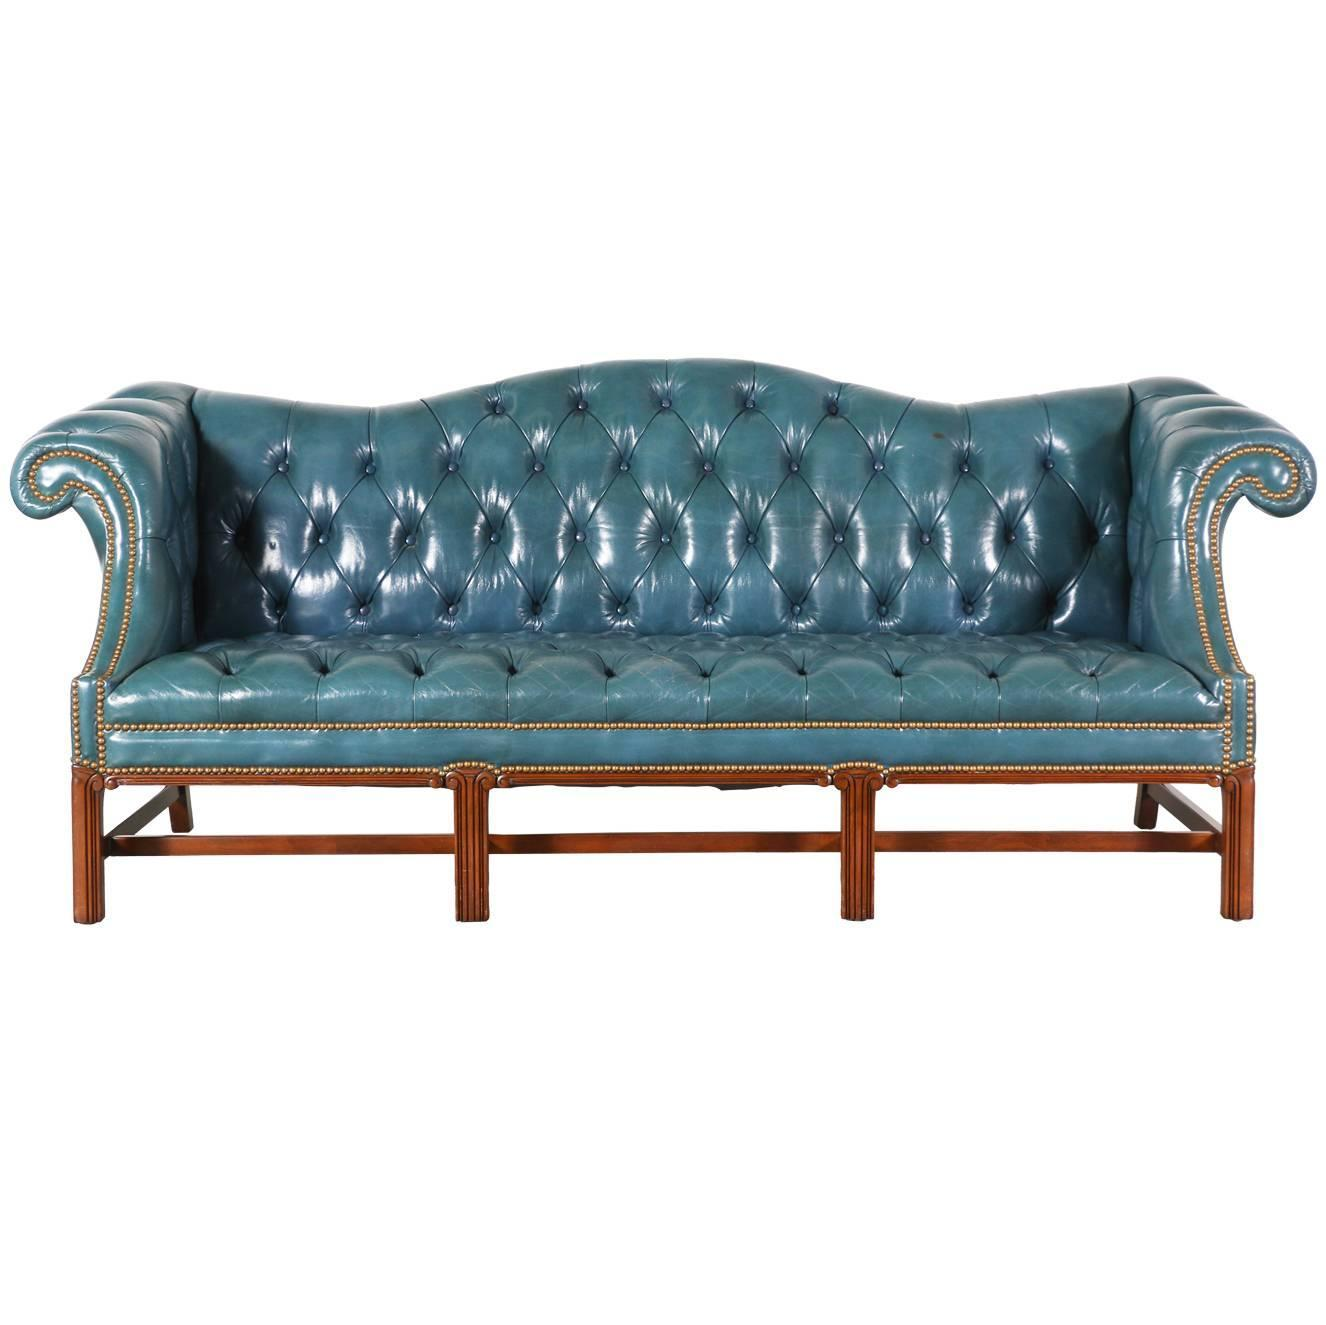 Vintage english leather teal blue chesterfield sofa at 1stdibs for Teal leather sofa